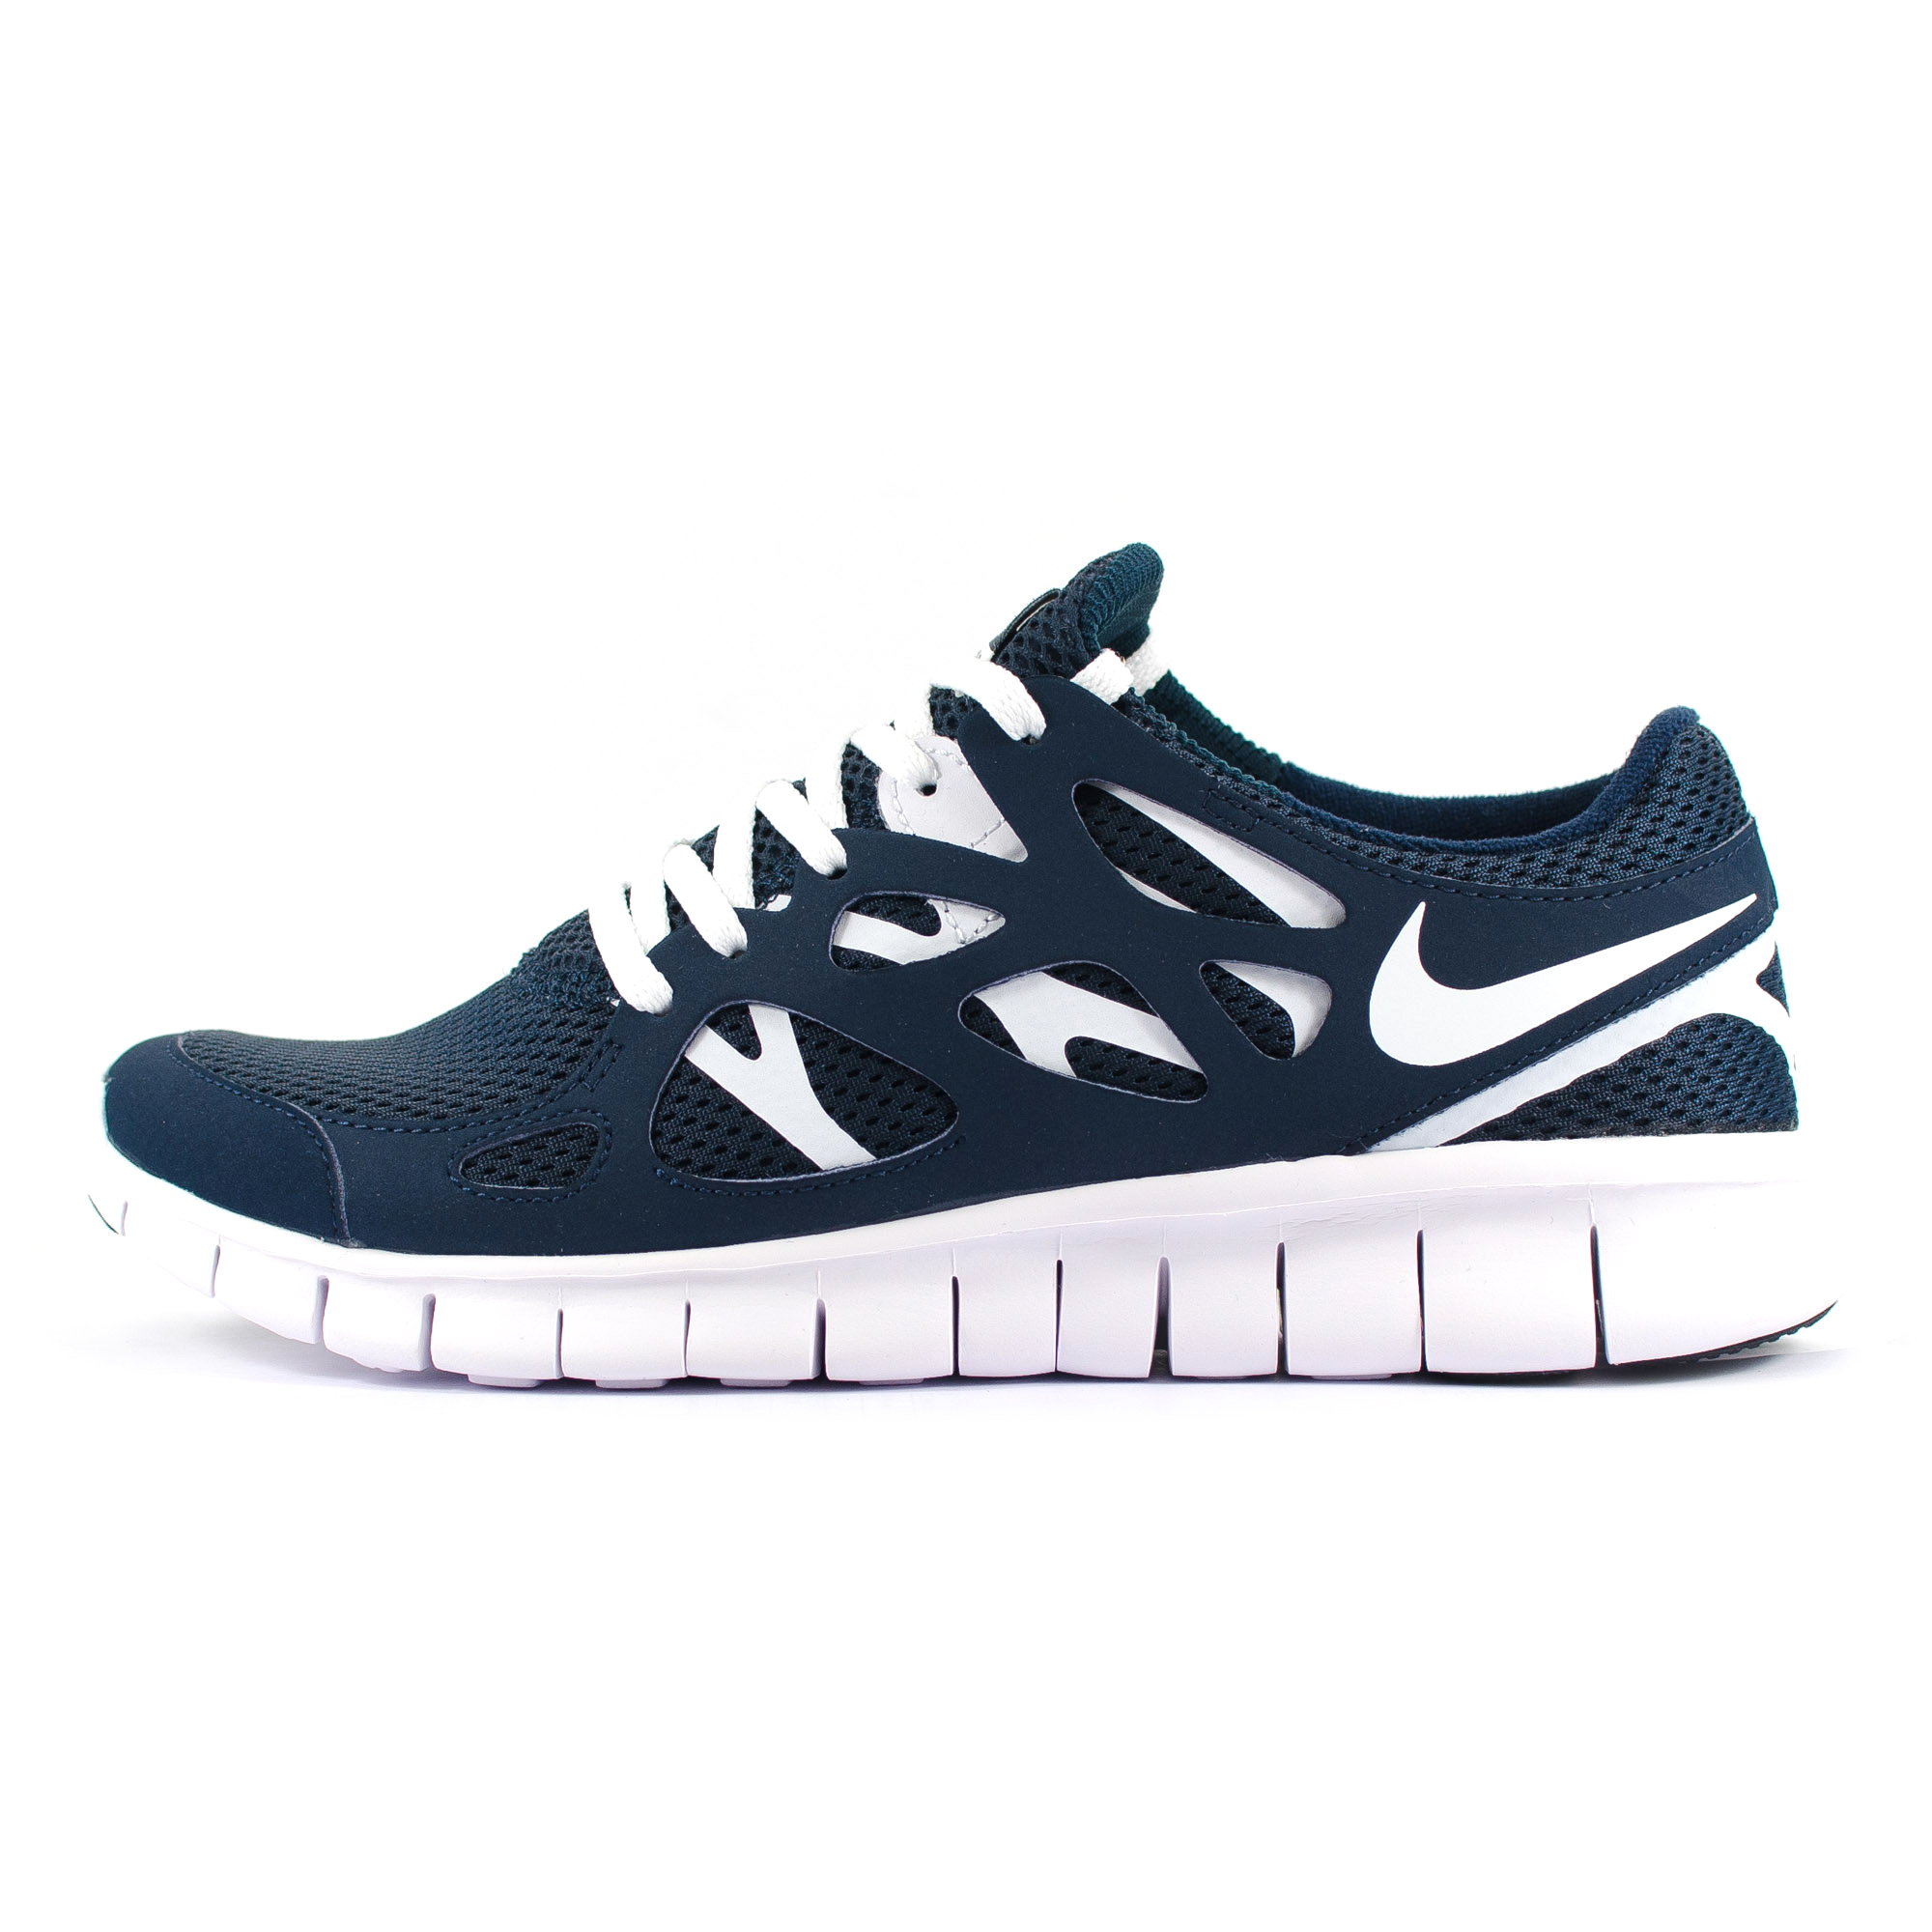 Mens Nike Free Run 2 Navy Blue/White Running Trainers (540244 411)